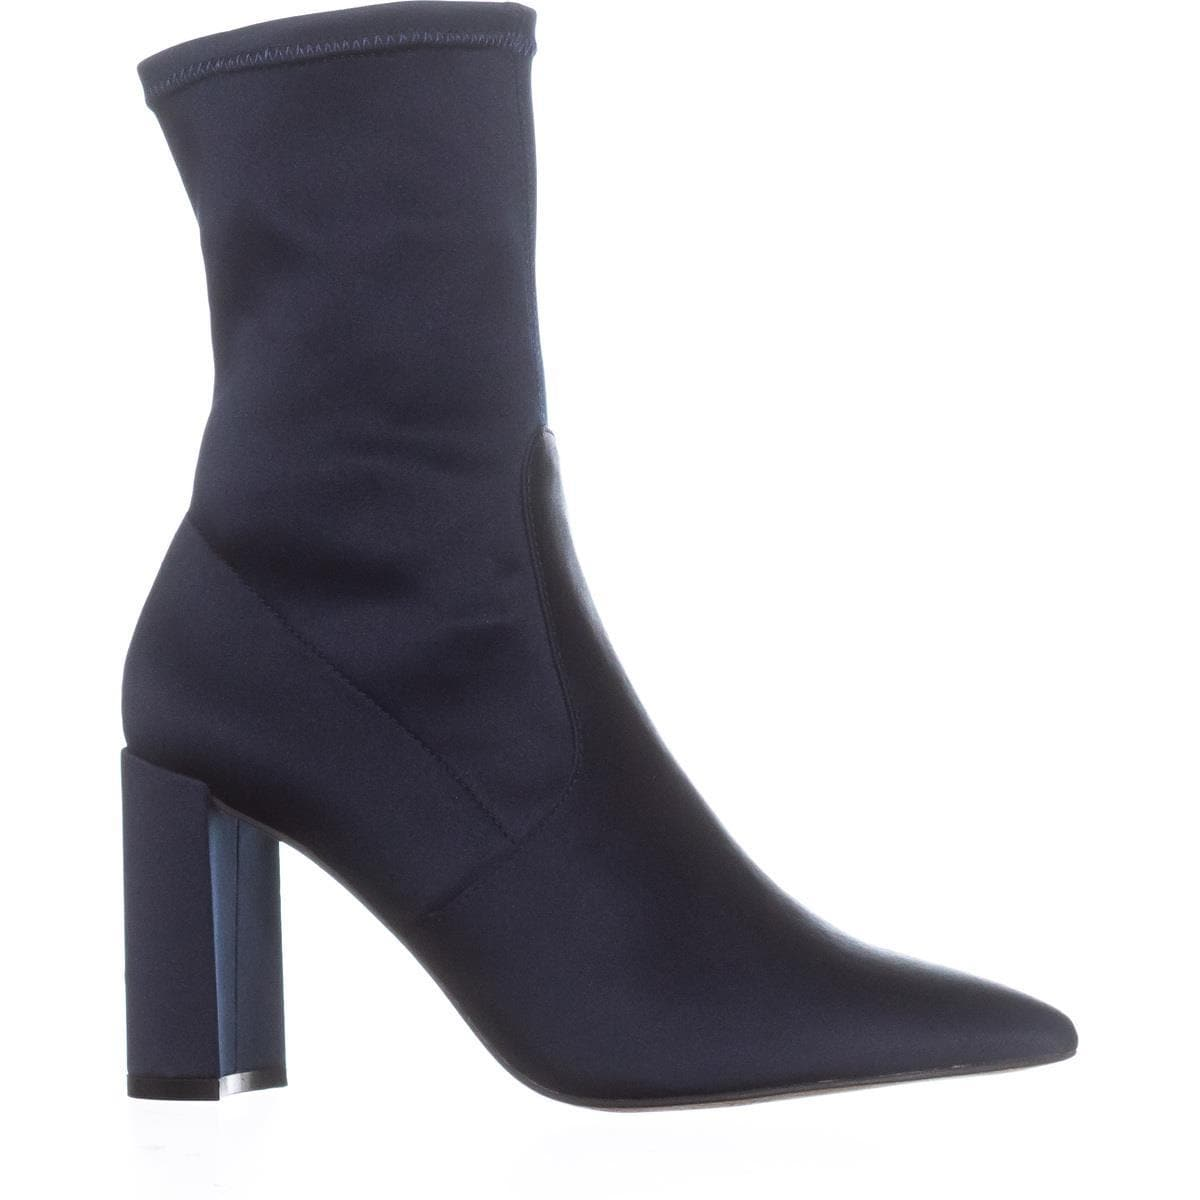 321700371625 Shop I35 Savina Pointed-Toe Ankle Boots, Storm Blue - 6 us - Free Shipping  On Orders Over $45 - Overstock.com - 22368814